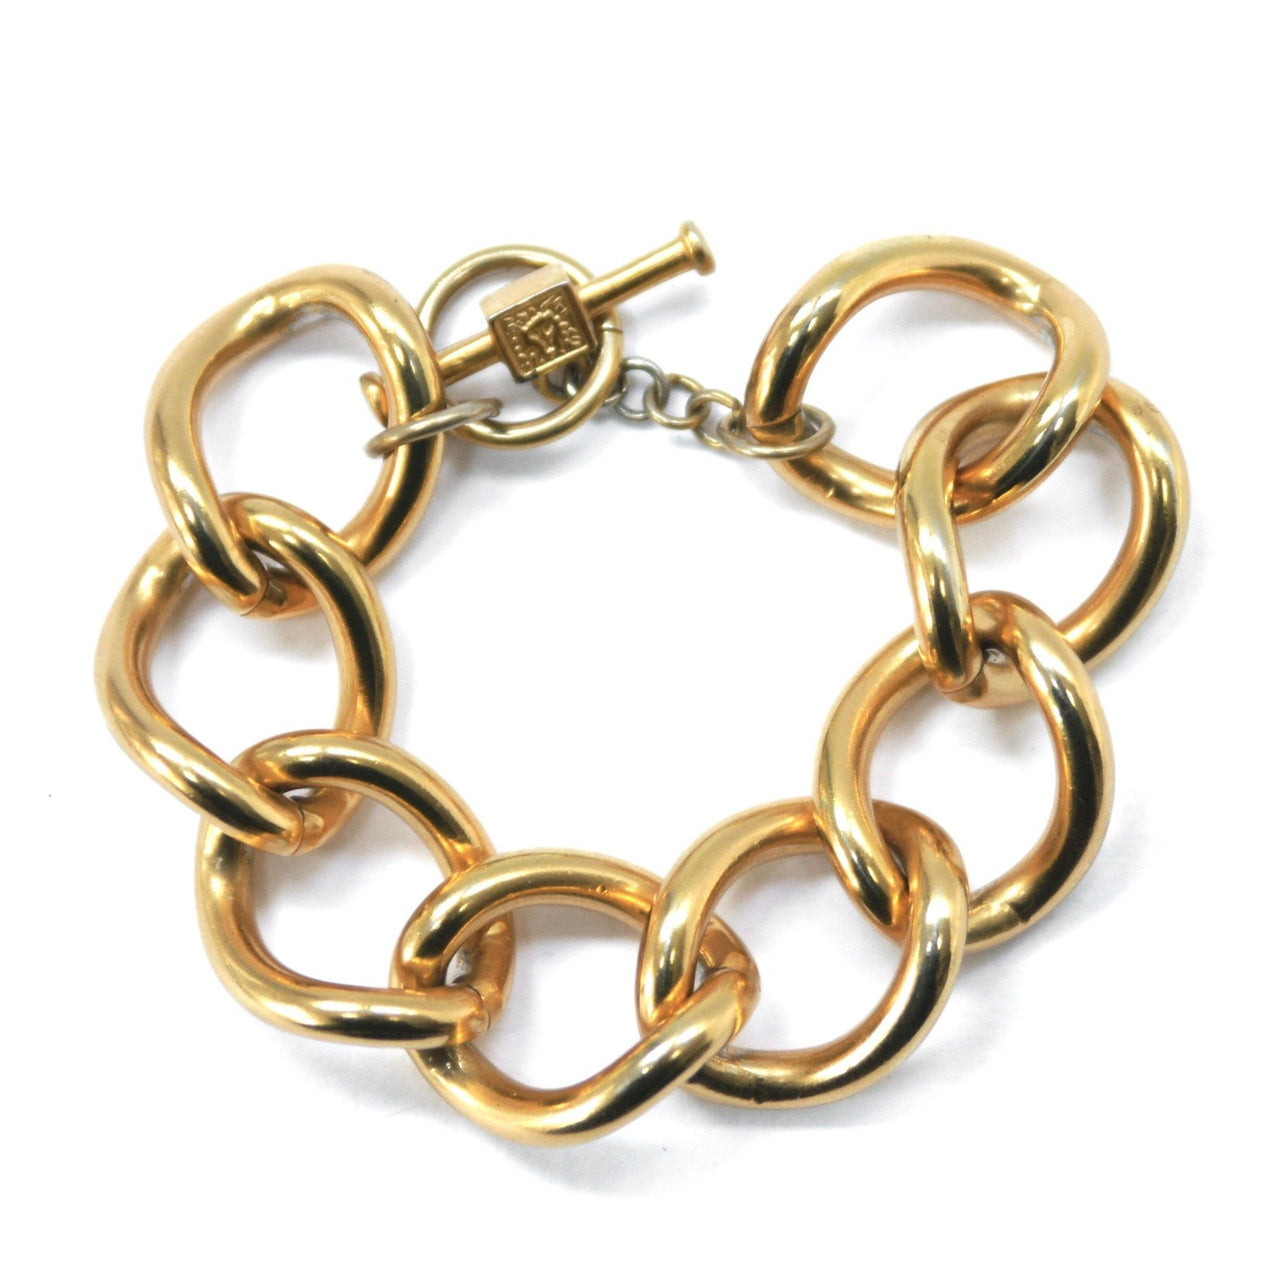 Anne Klein heavy link 1980s gold plated bracelet